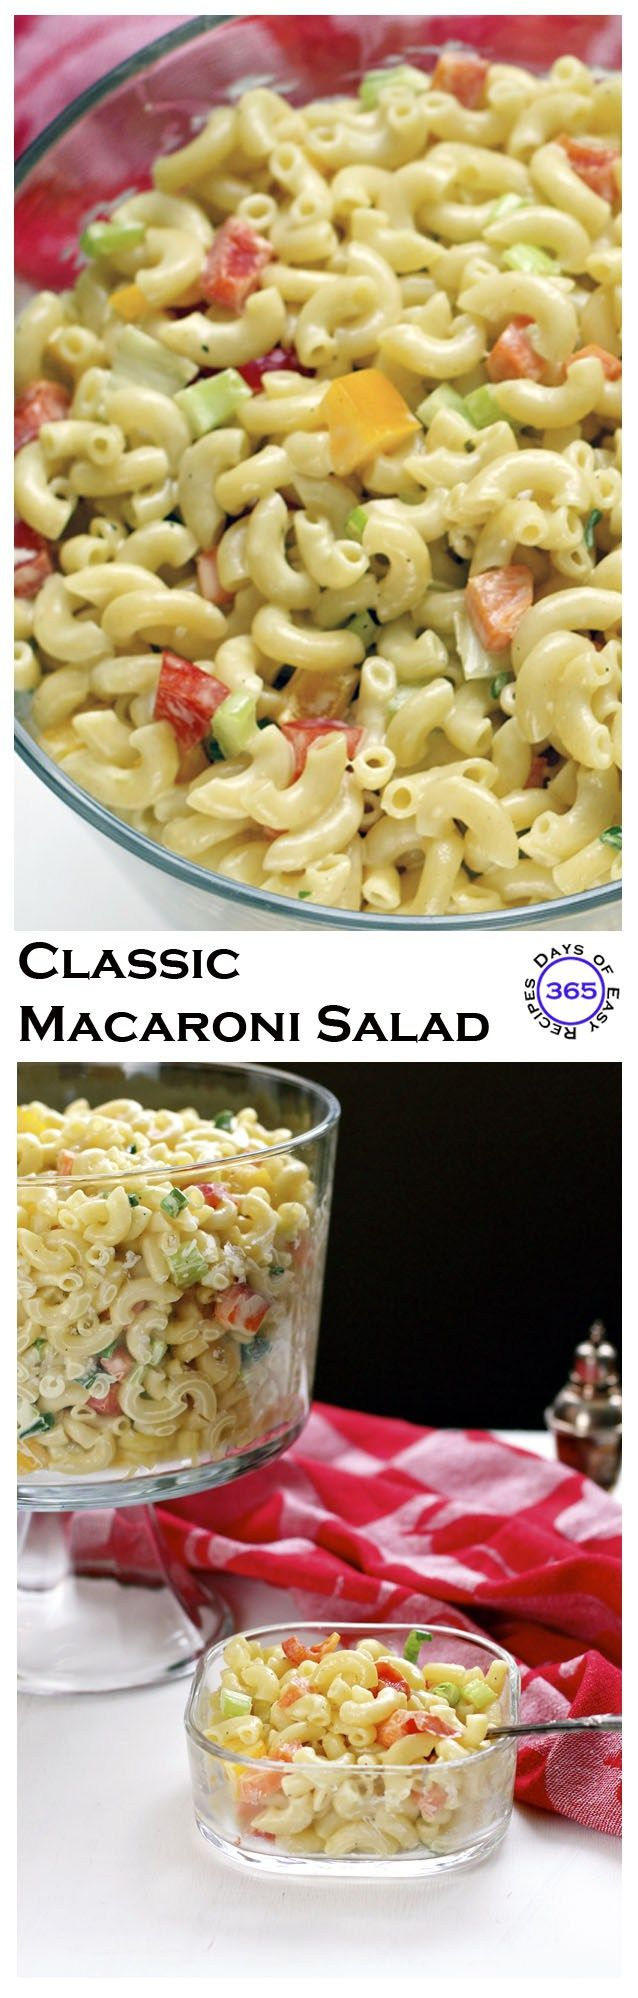 Best 25 classic macaroni salad ideas on pinterest for Best summer pasta salad recipes ever